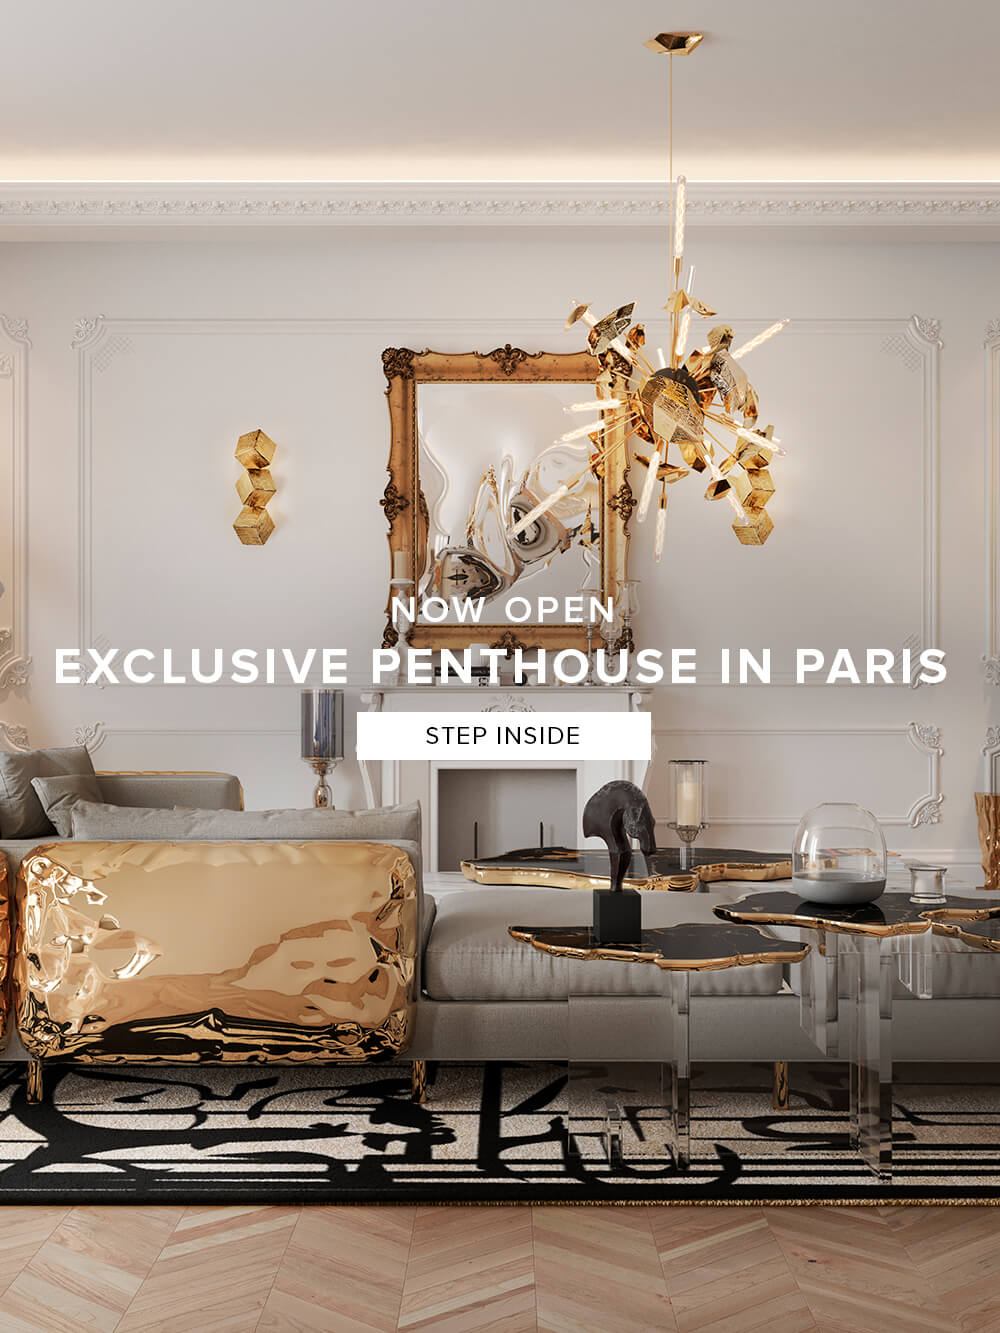 Now Open - Exclusive Penthouse in Paris - Step Inside